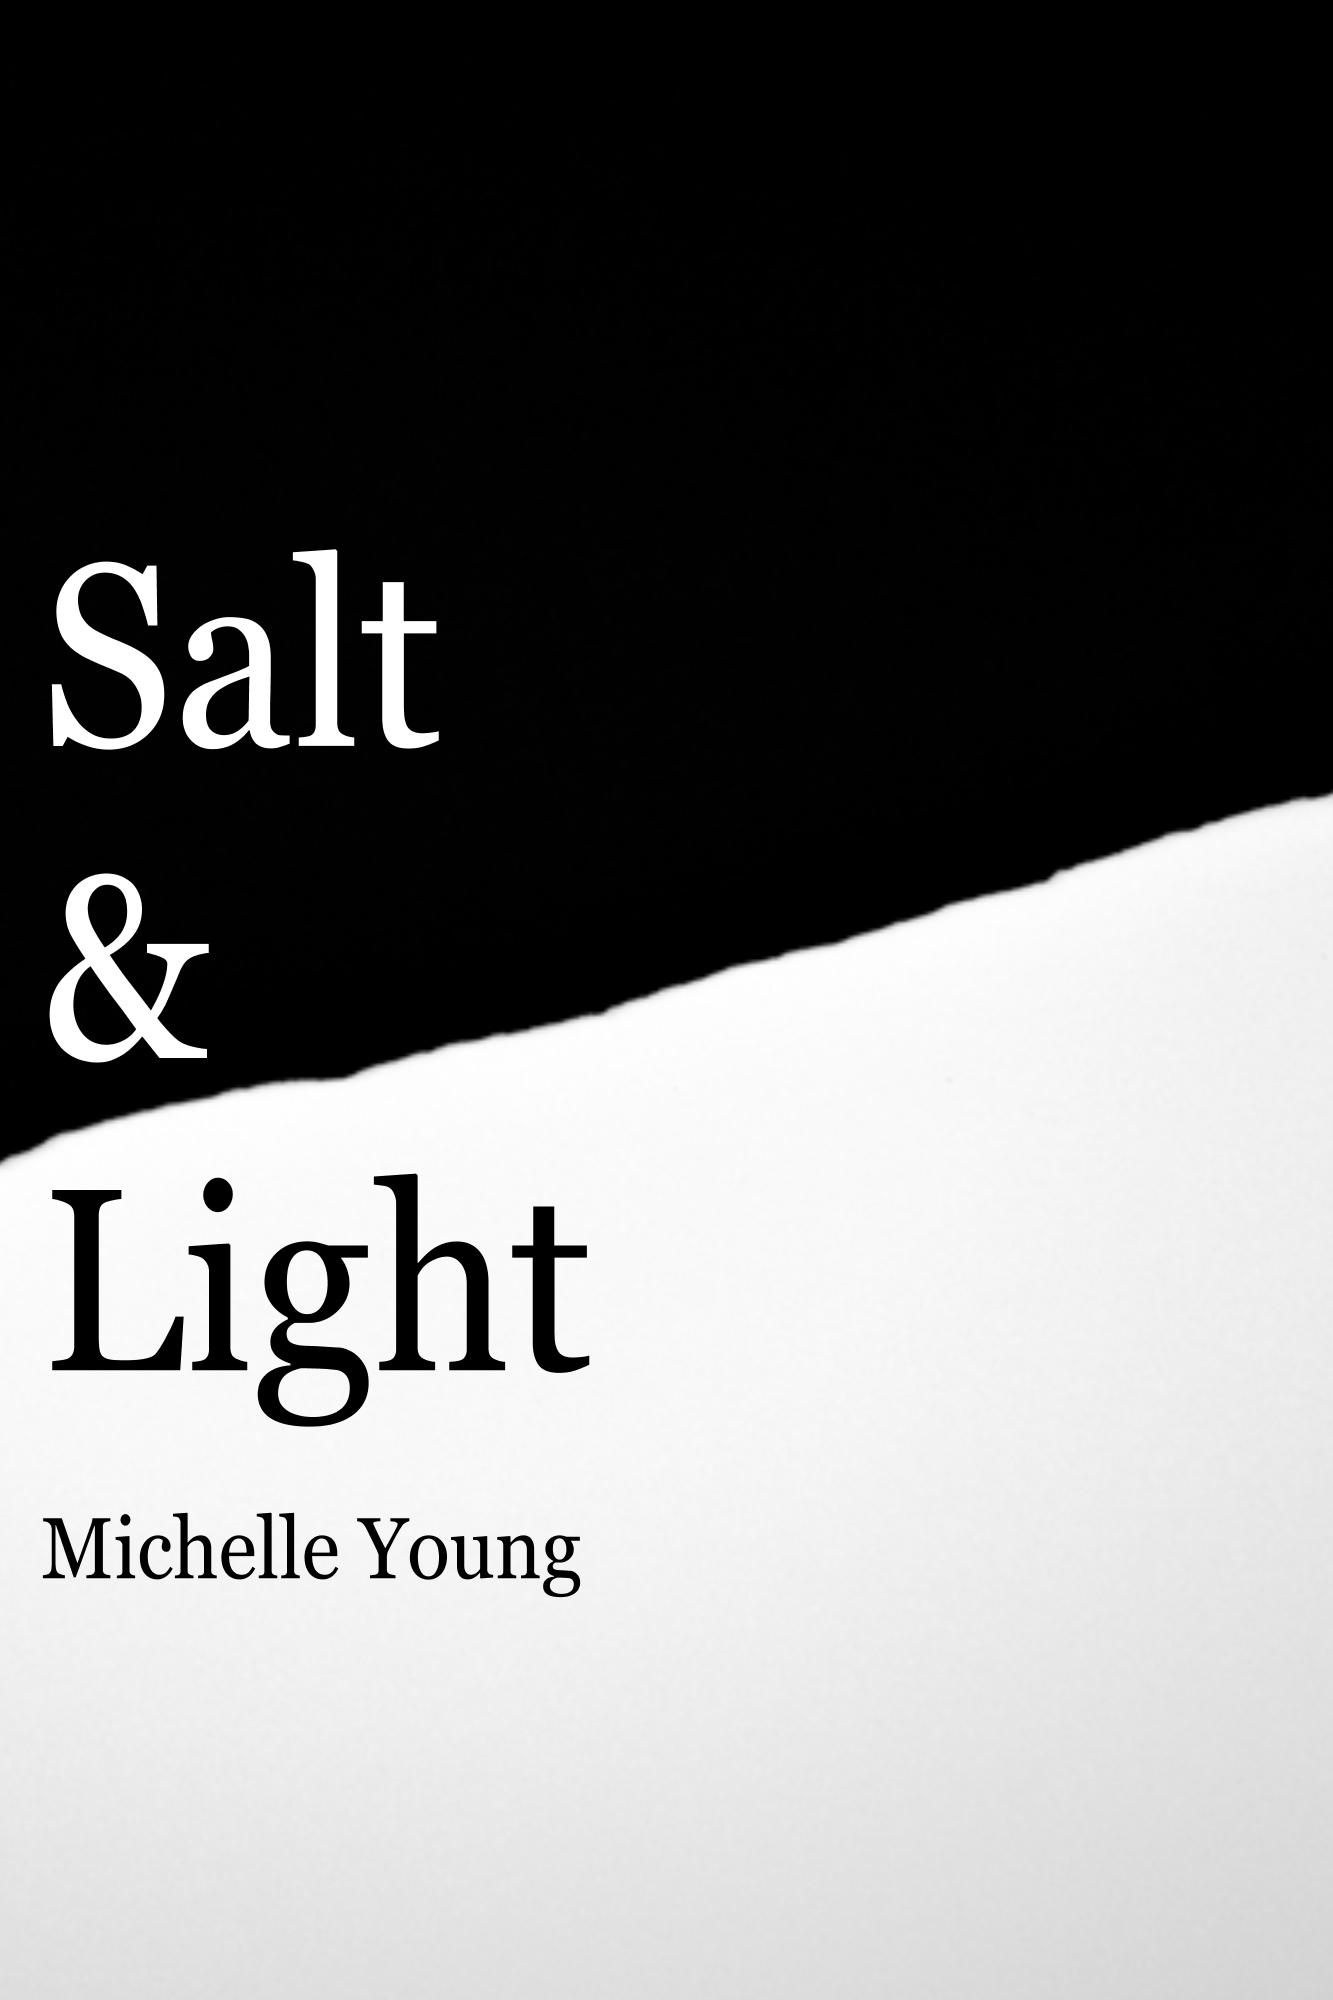 Salt & Light - Salt & Light is a book of prose and poetry, shedding light onto invisible struggles and journeys through mental illness, abuse and infertility. The book is divided in two parts, Salt; representing darkness of the past and Light; representing the hopefulness of the future. Salt & Light takes readers through a journey of pain and ends with emotional healing and self-worth.